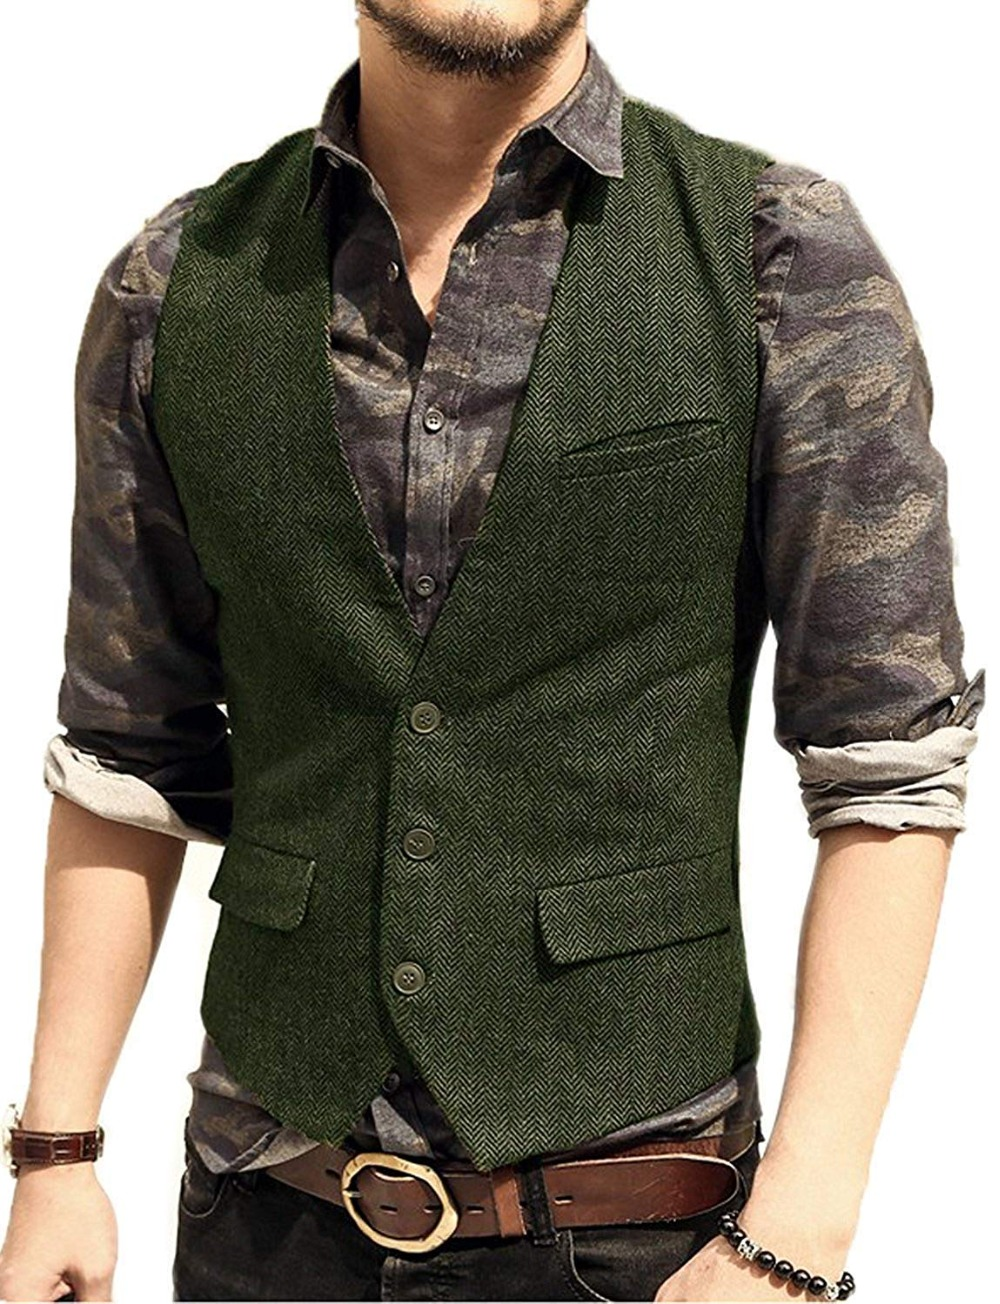 Suit Vest Waistcoat Wool Formal Herringbone Tweed Brown/coffee Casual Groomman Men's